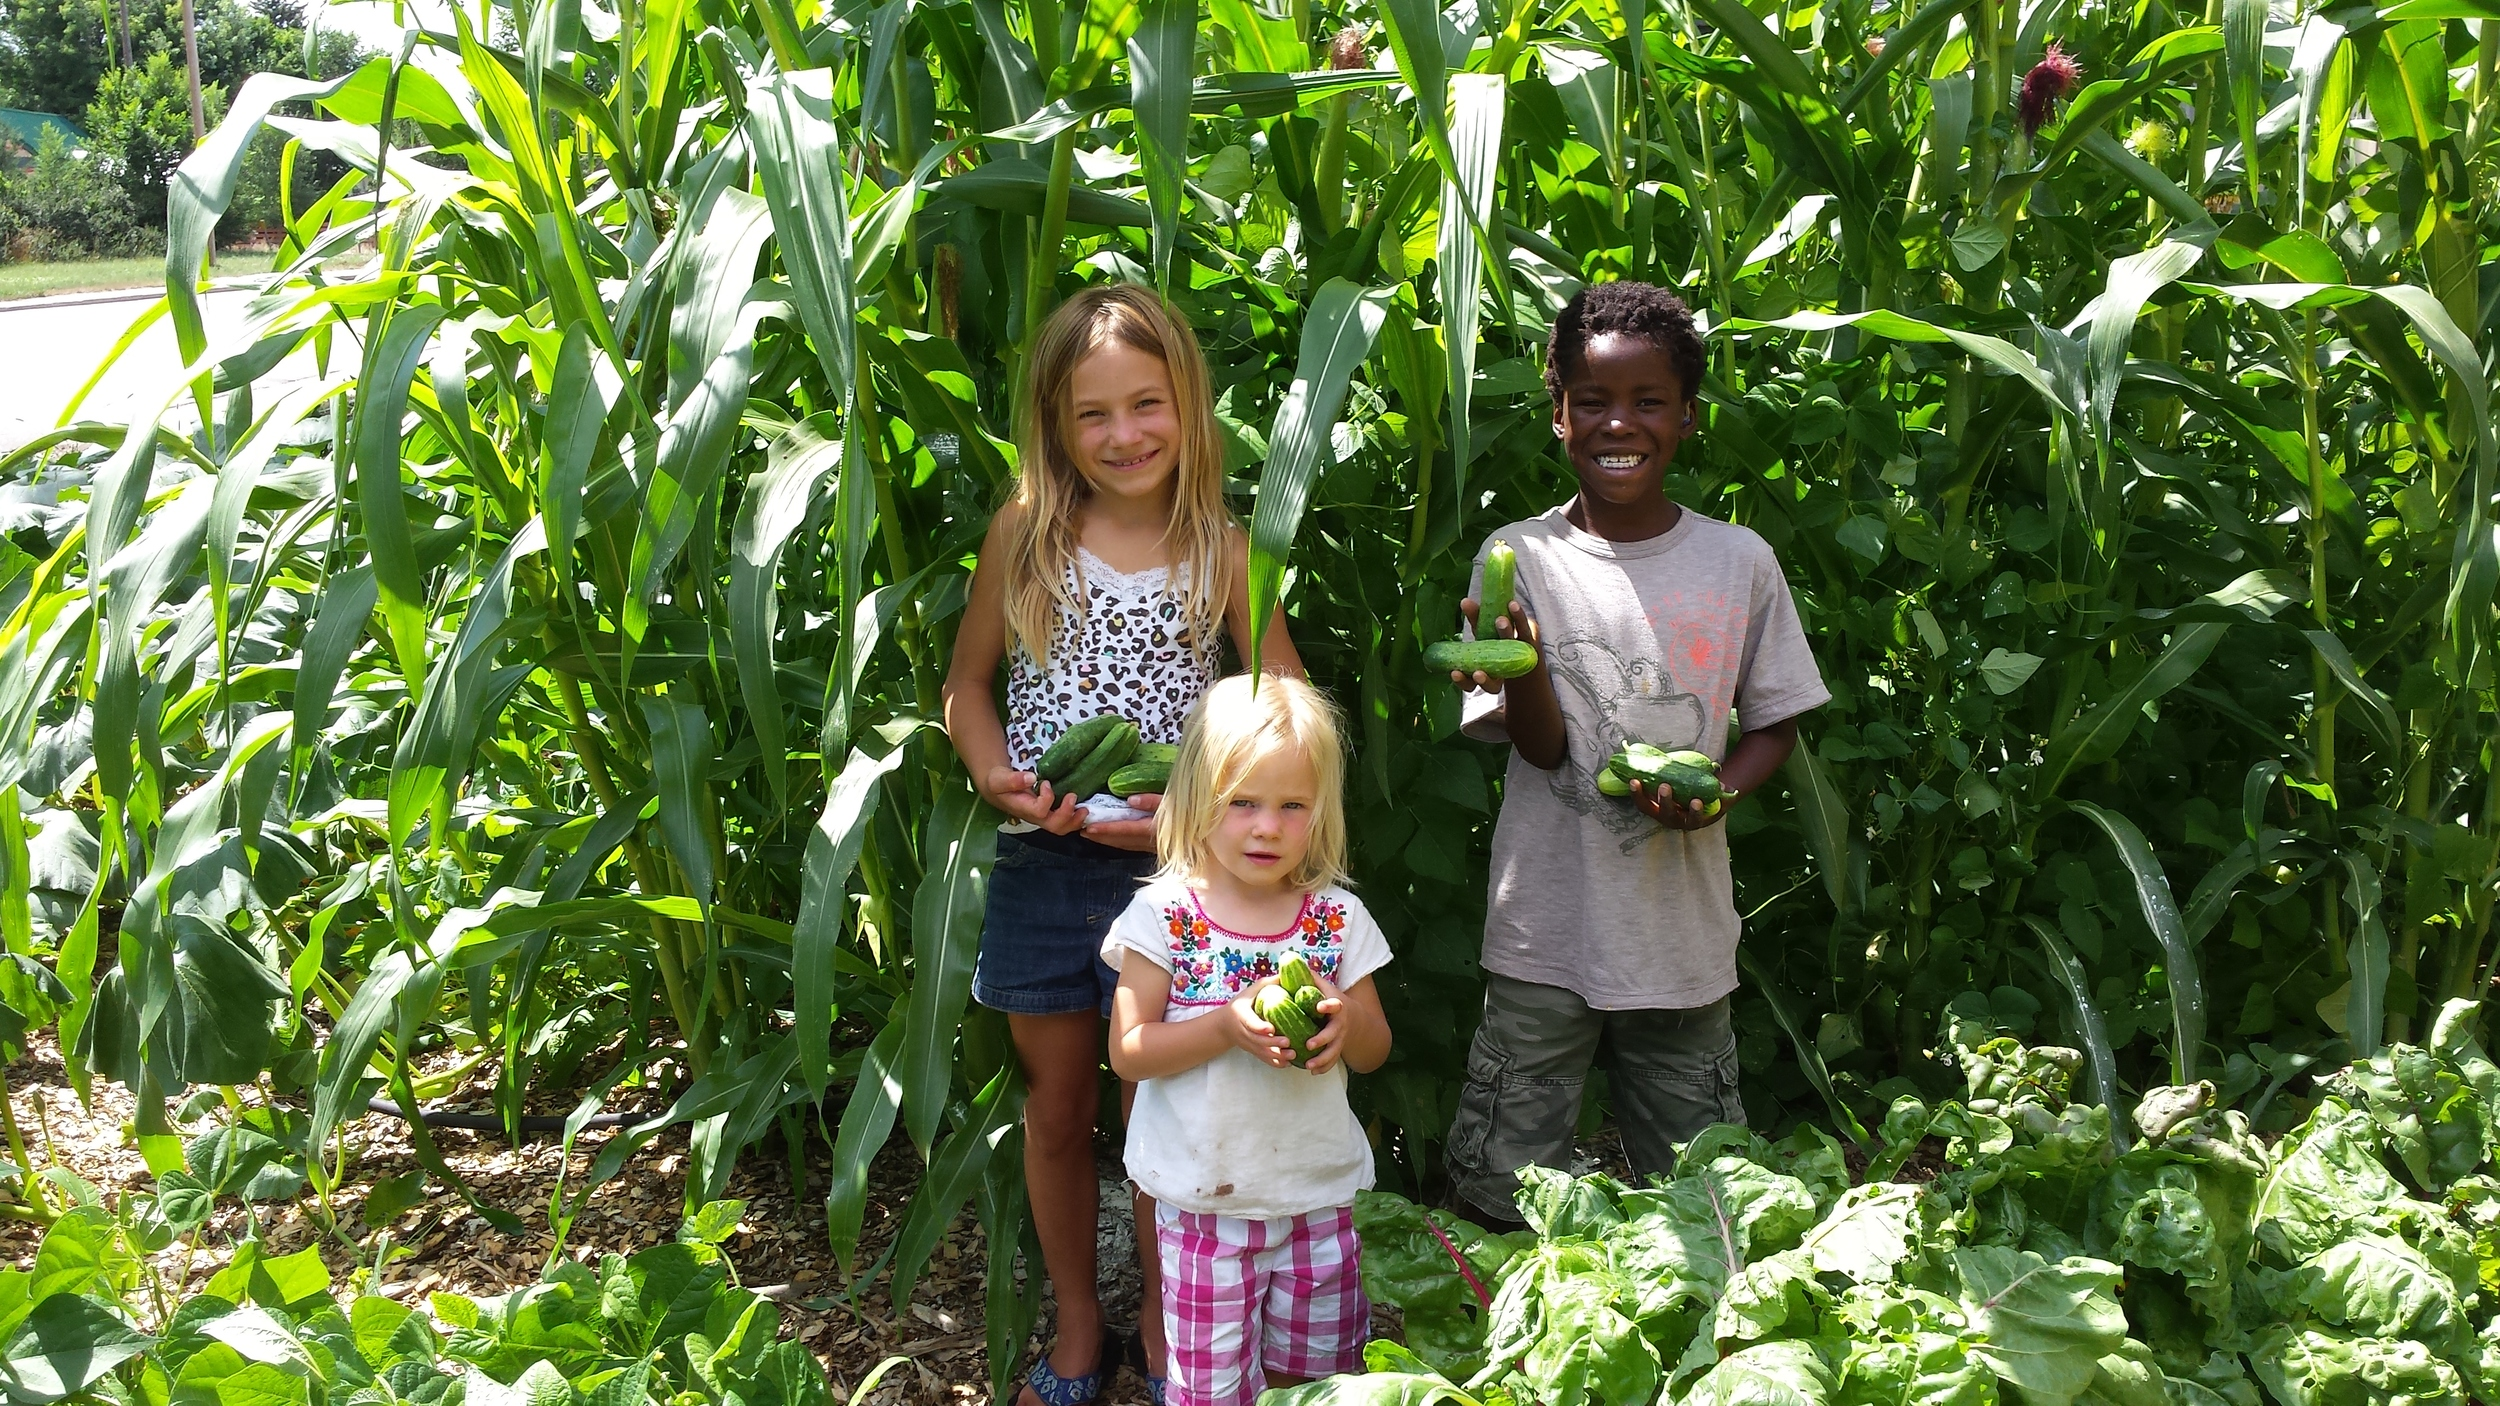 Peterson kids showing their bounty of cucumbers!